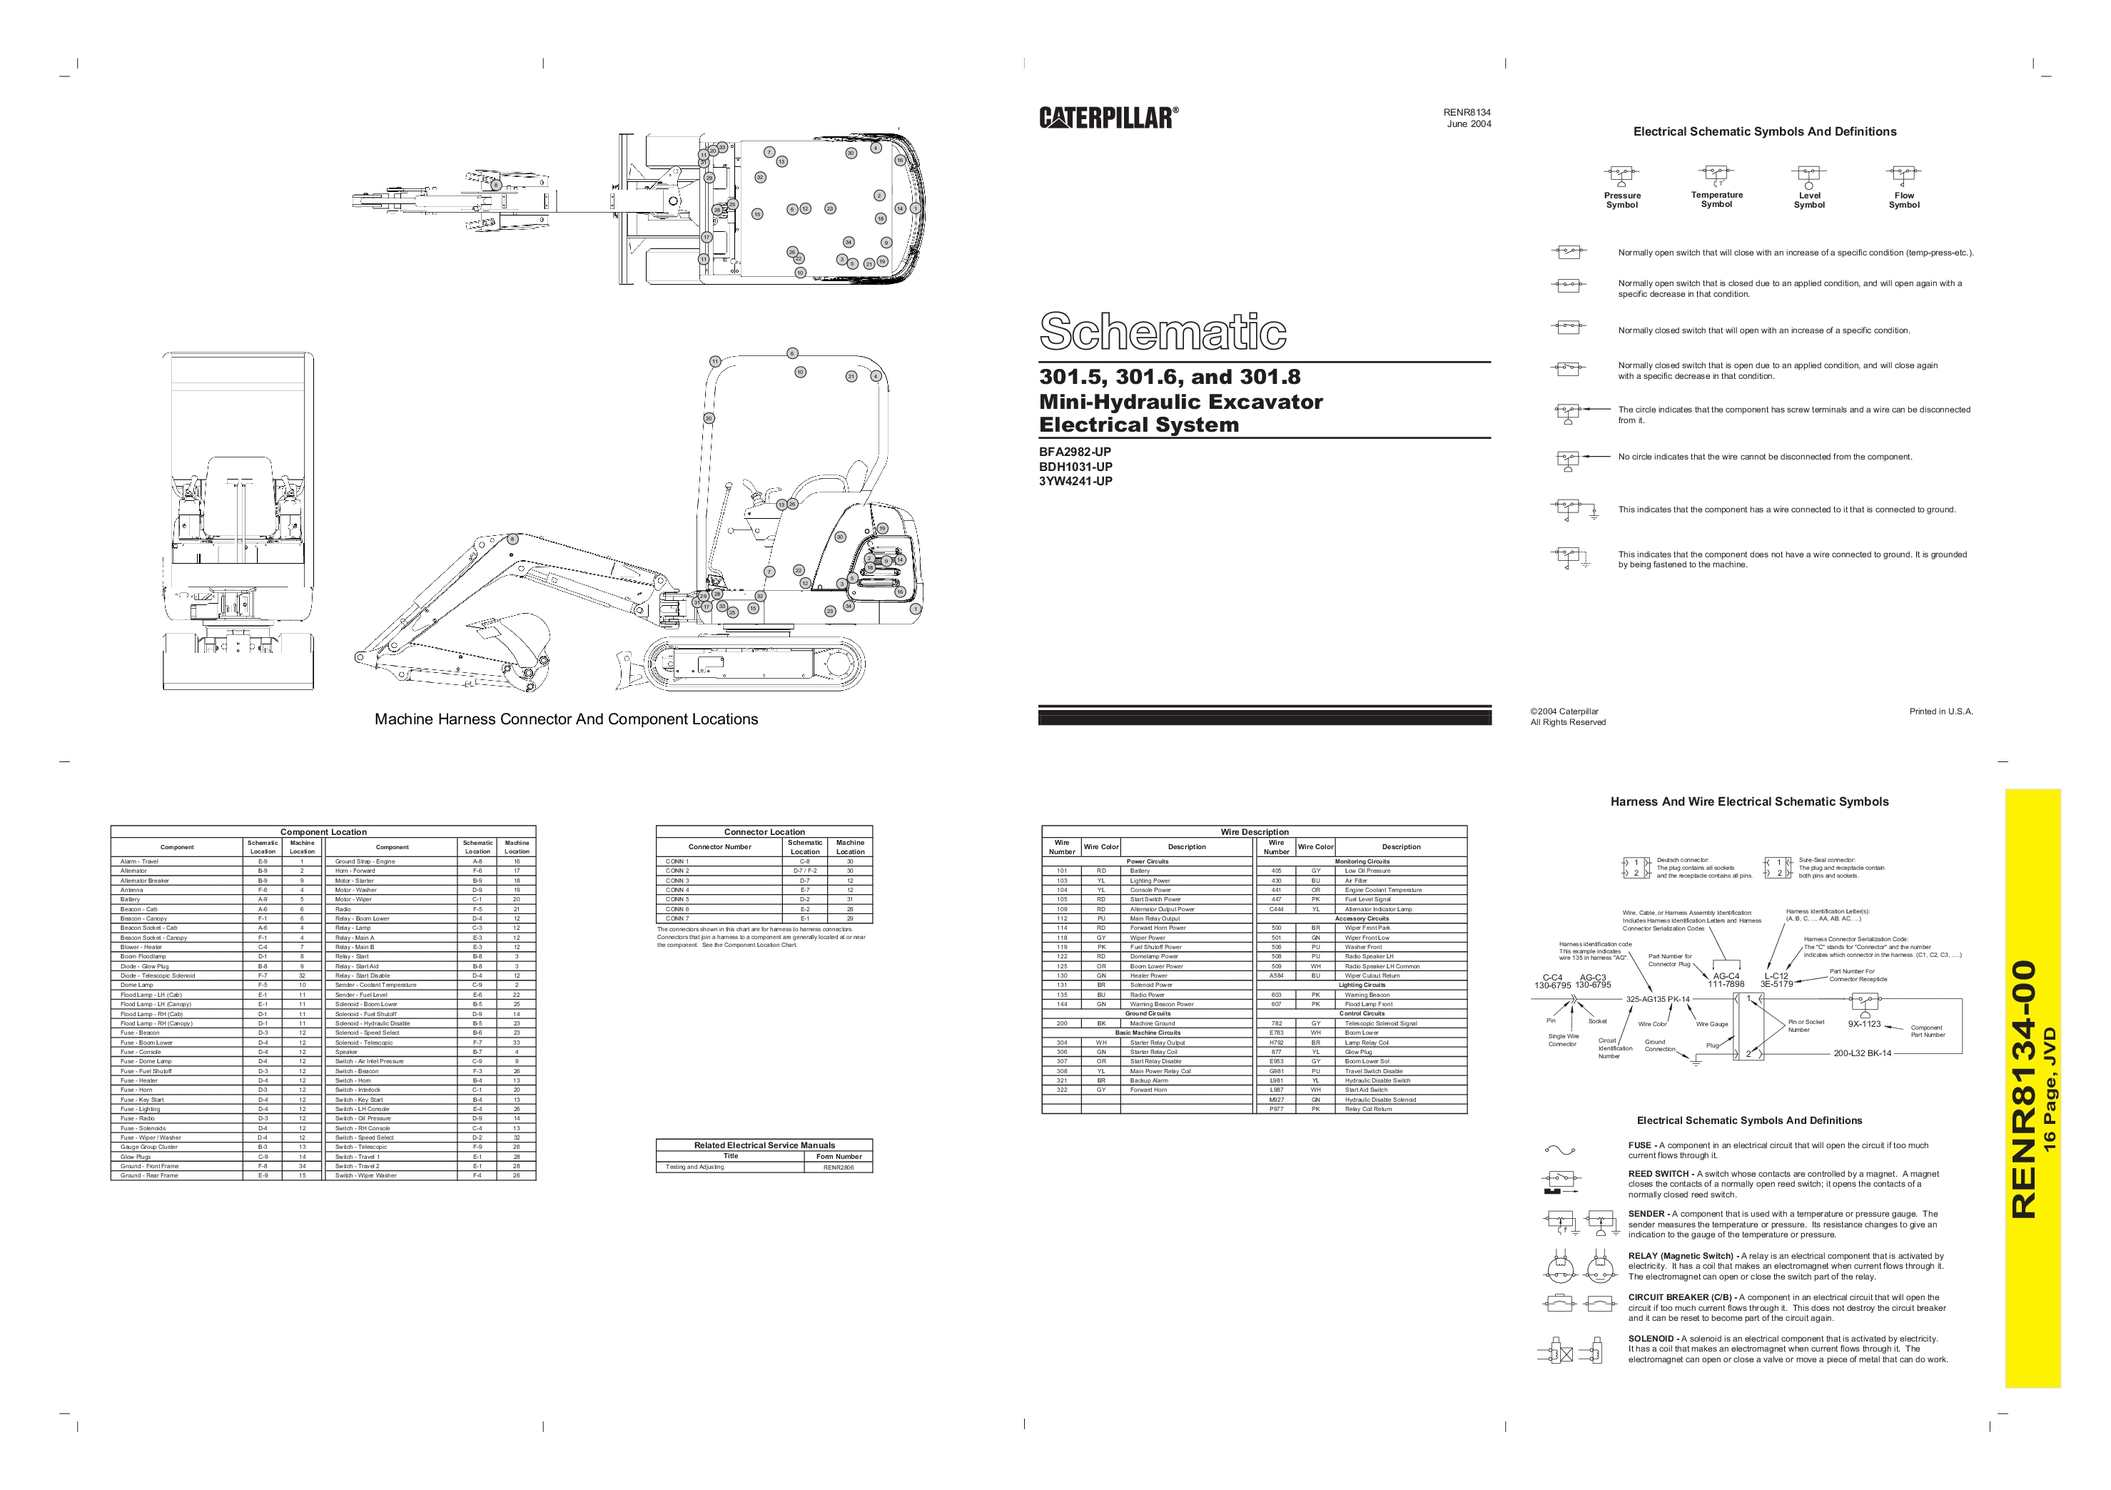 alternator to battery wiring diagram 1989 ford bronco calaméo - cat 301 5 6 8 mini diagrama electrico